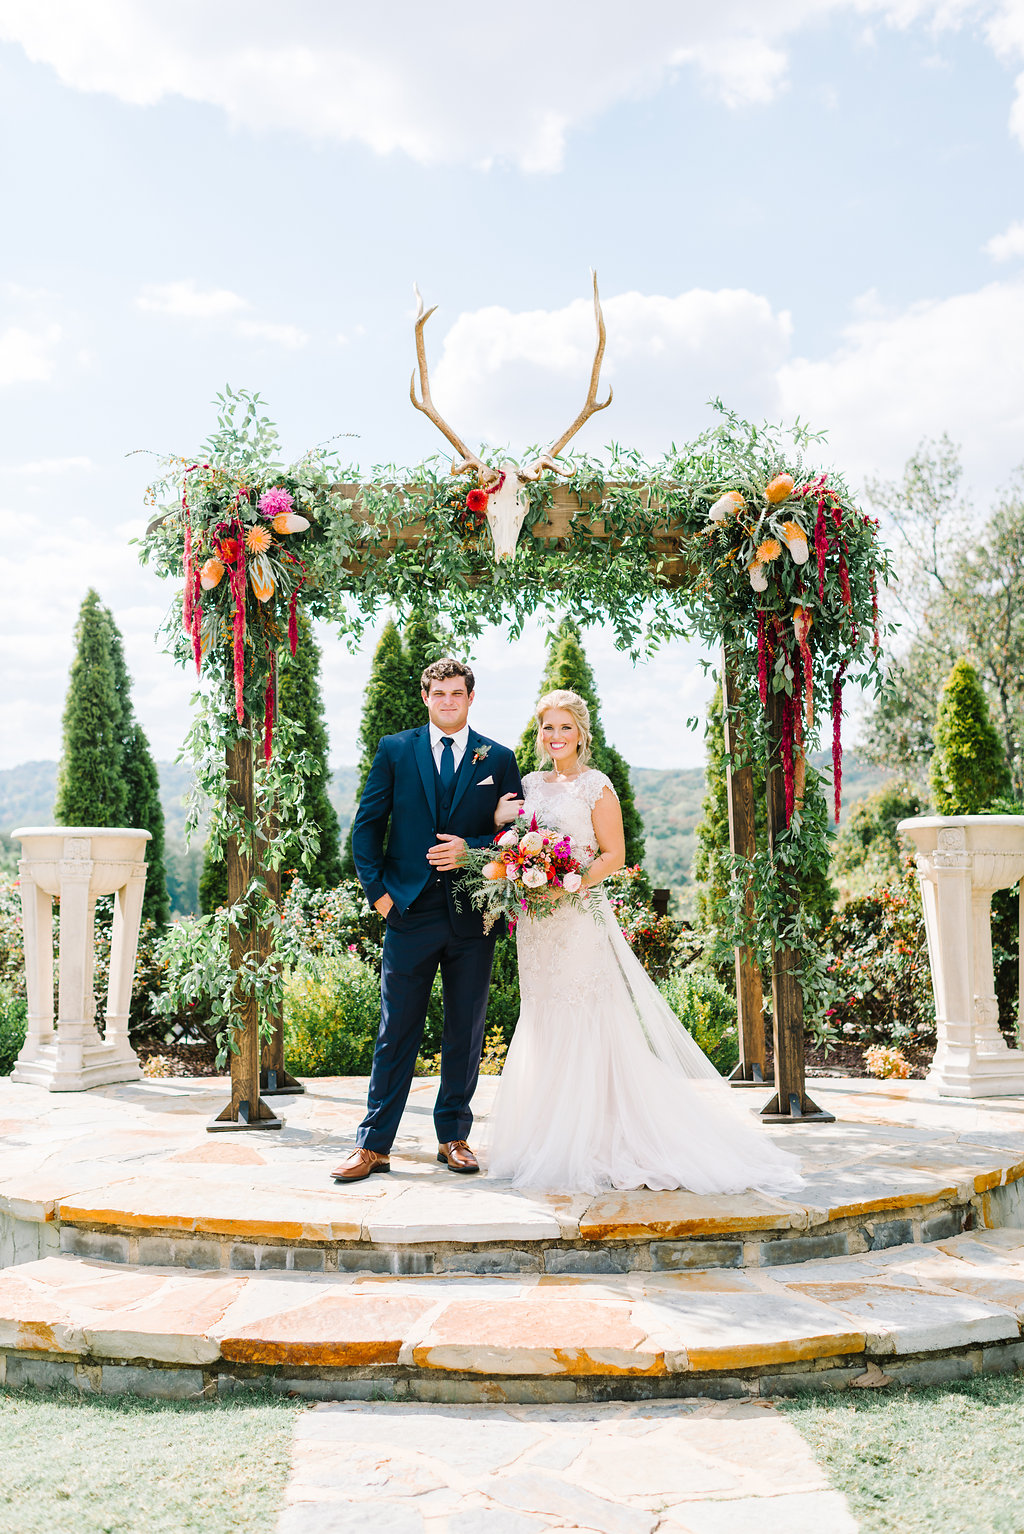 boho bride and groom - photo by Cathrine Taylor Photography http://ruffledblog.com/colorful-alabama-wedding-with-desert-accents